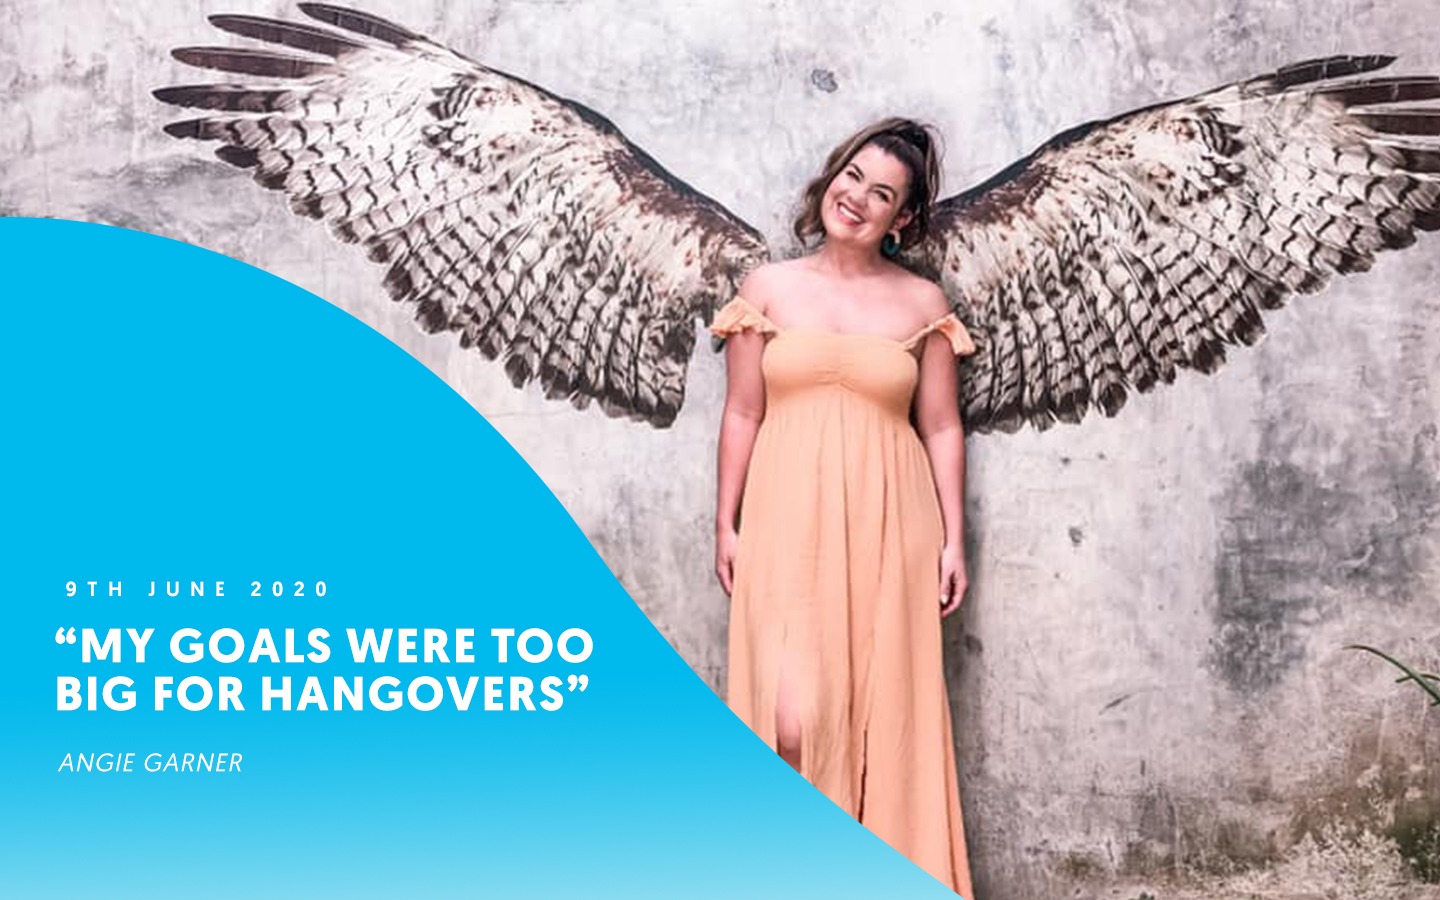 """My goals were too big for hangovers"" – Angie Garner"